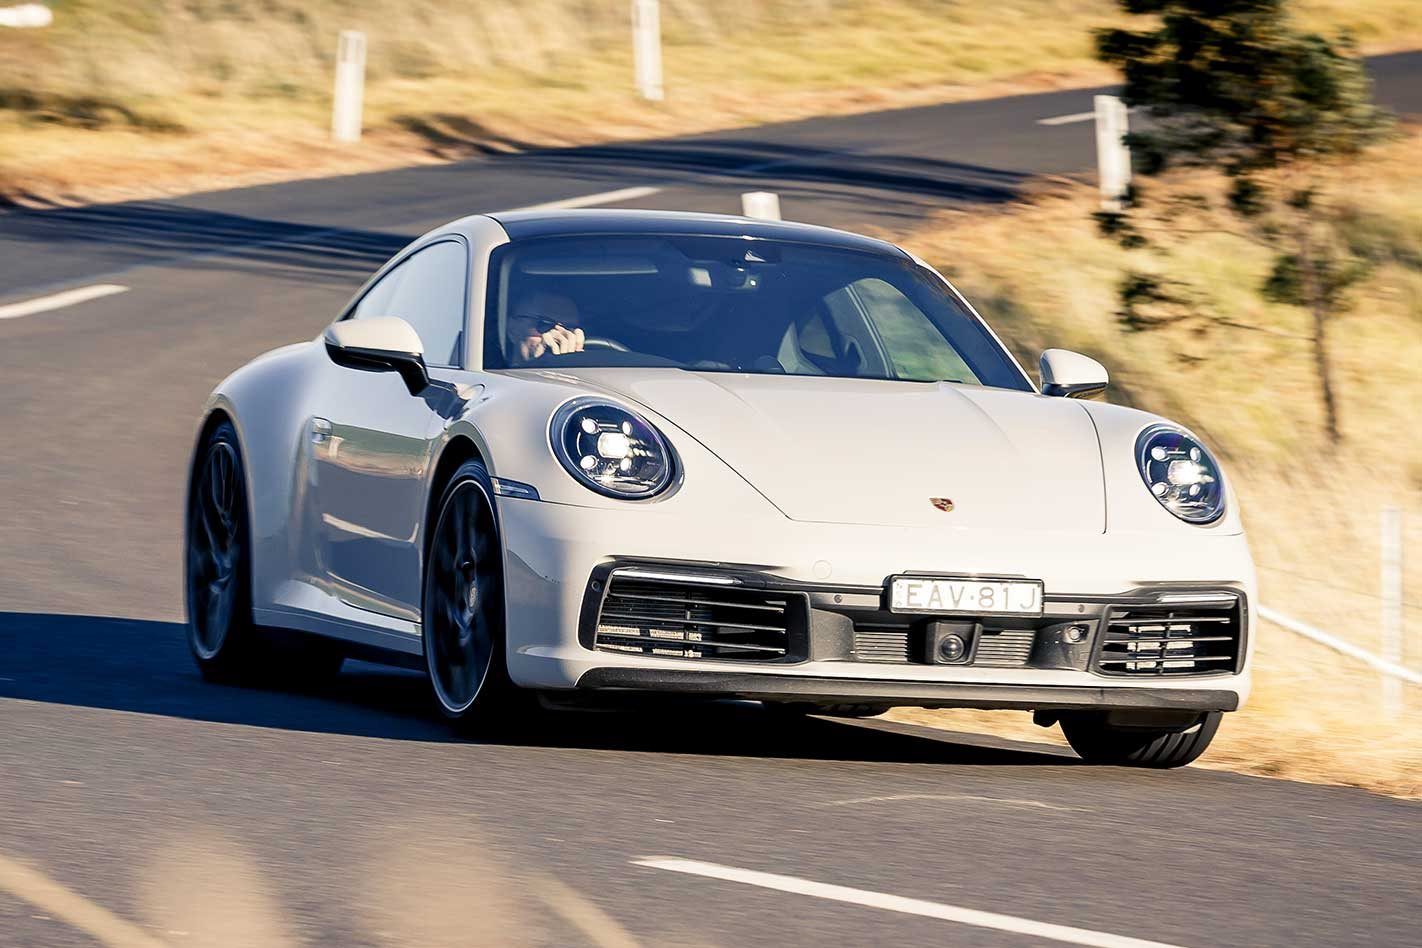 2019 Porsche 911 Carrera 4S performance review